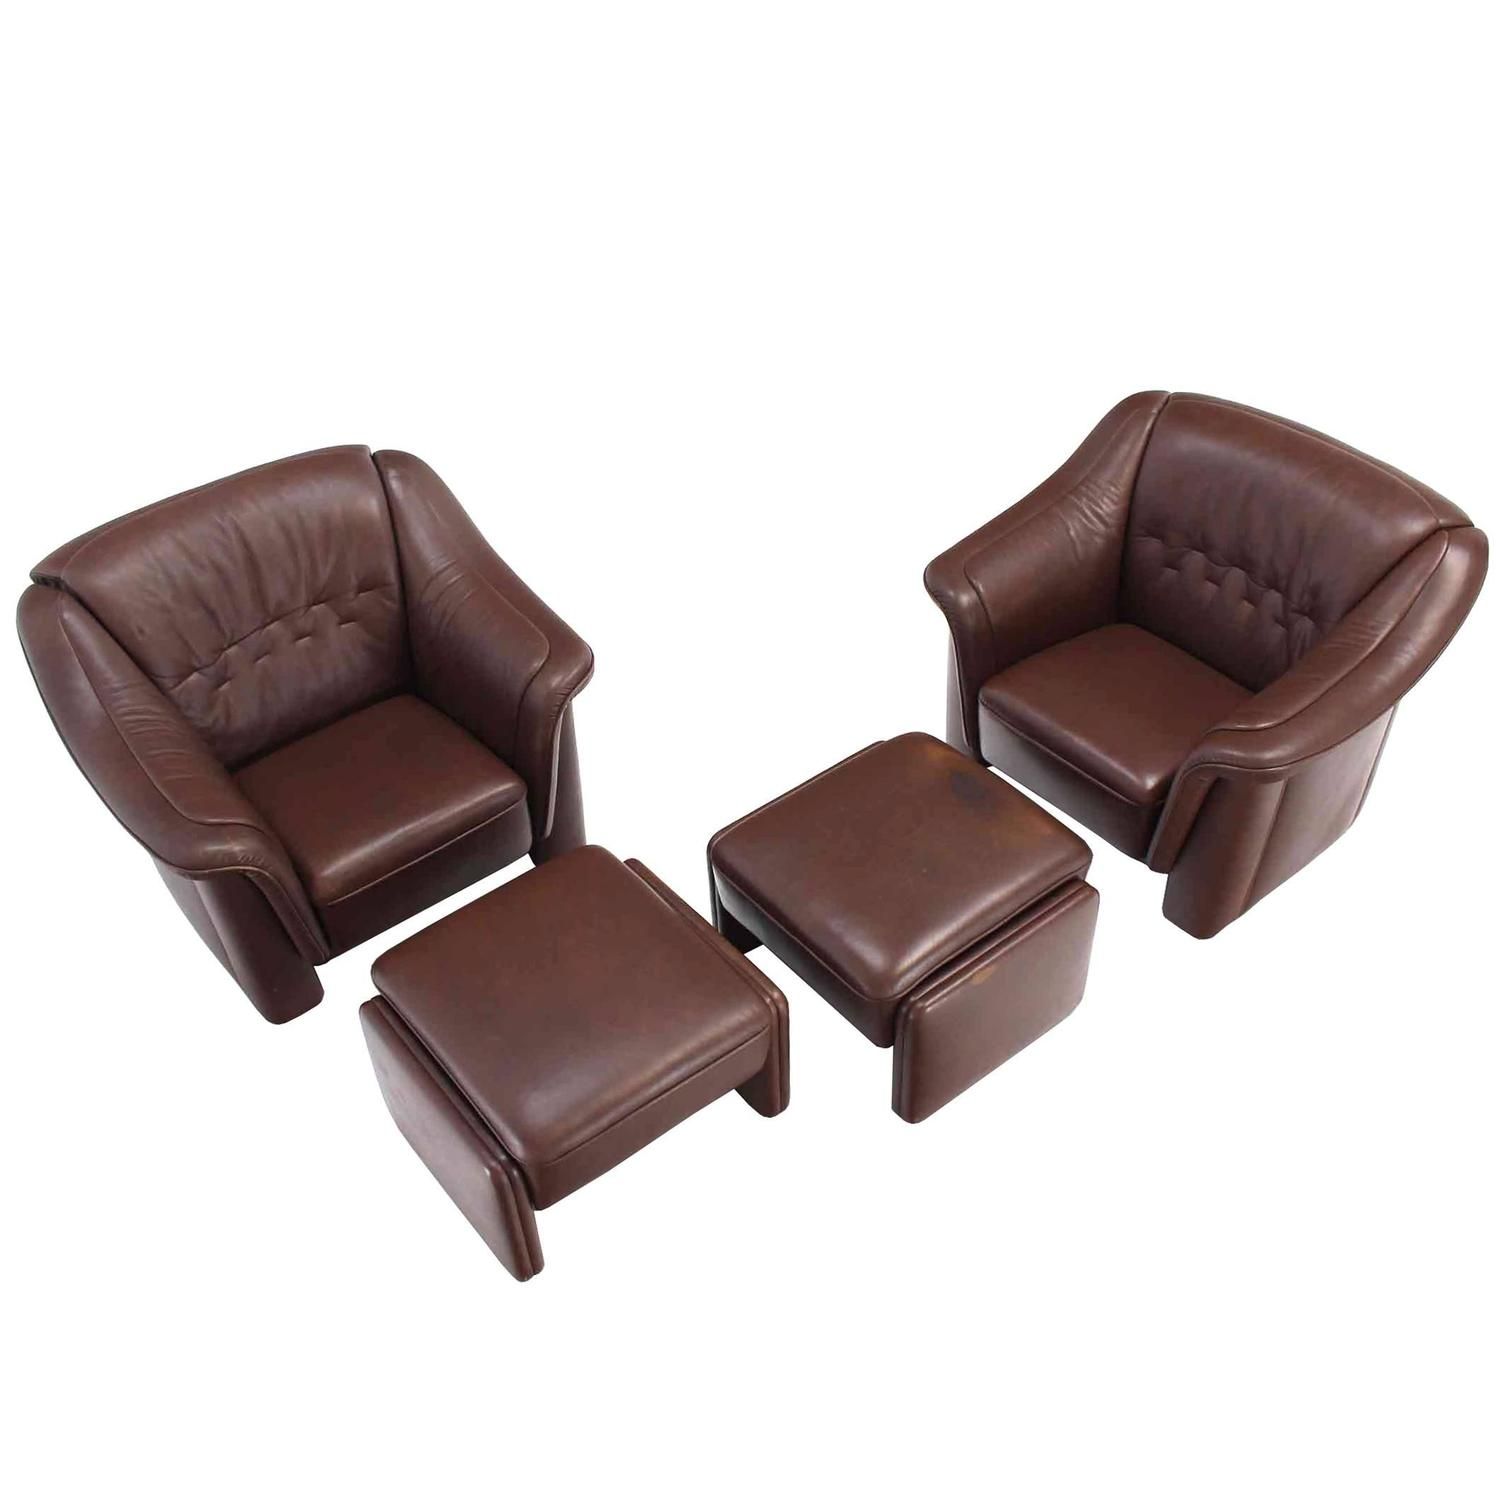 tan leather chair sale cheap chiavari chairs pair of brown lounge with ottomans for